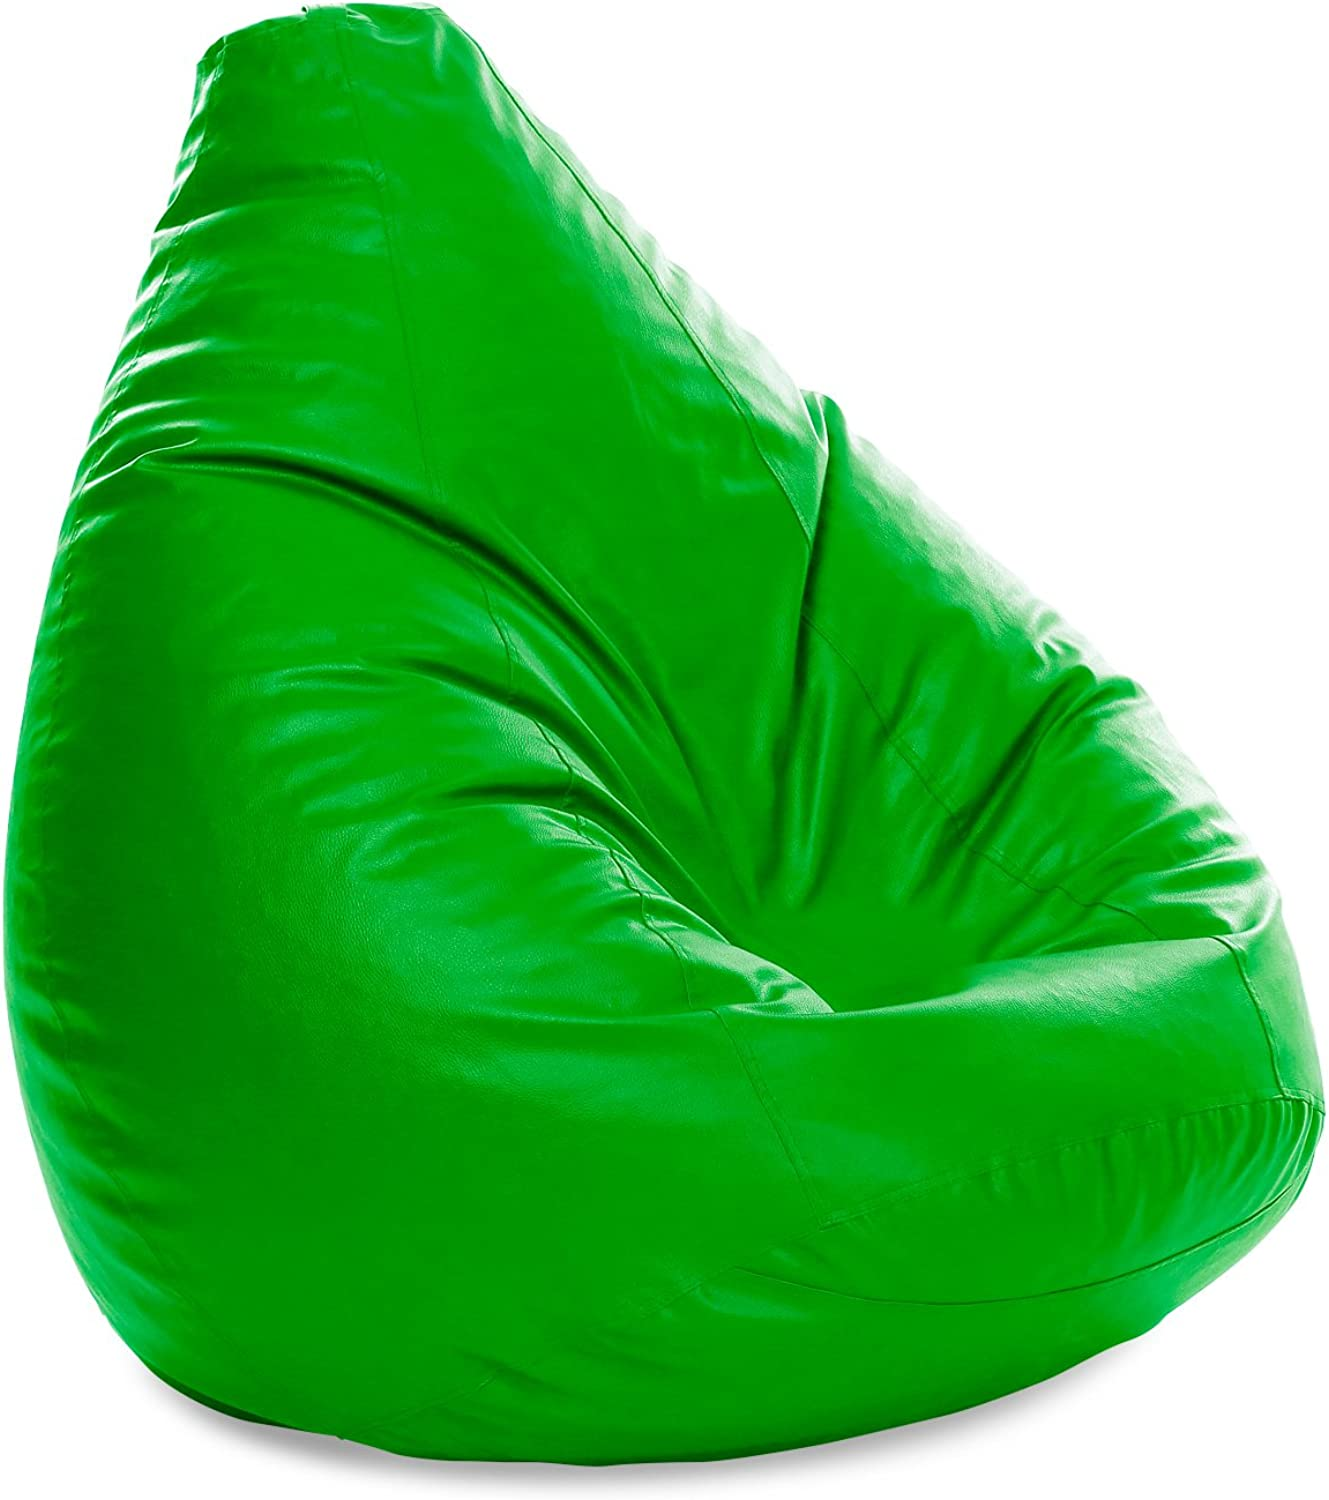 Style Homez Jumbo SAC Bean Bag Parred Green color Cover Only